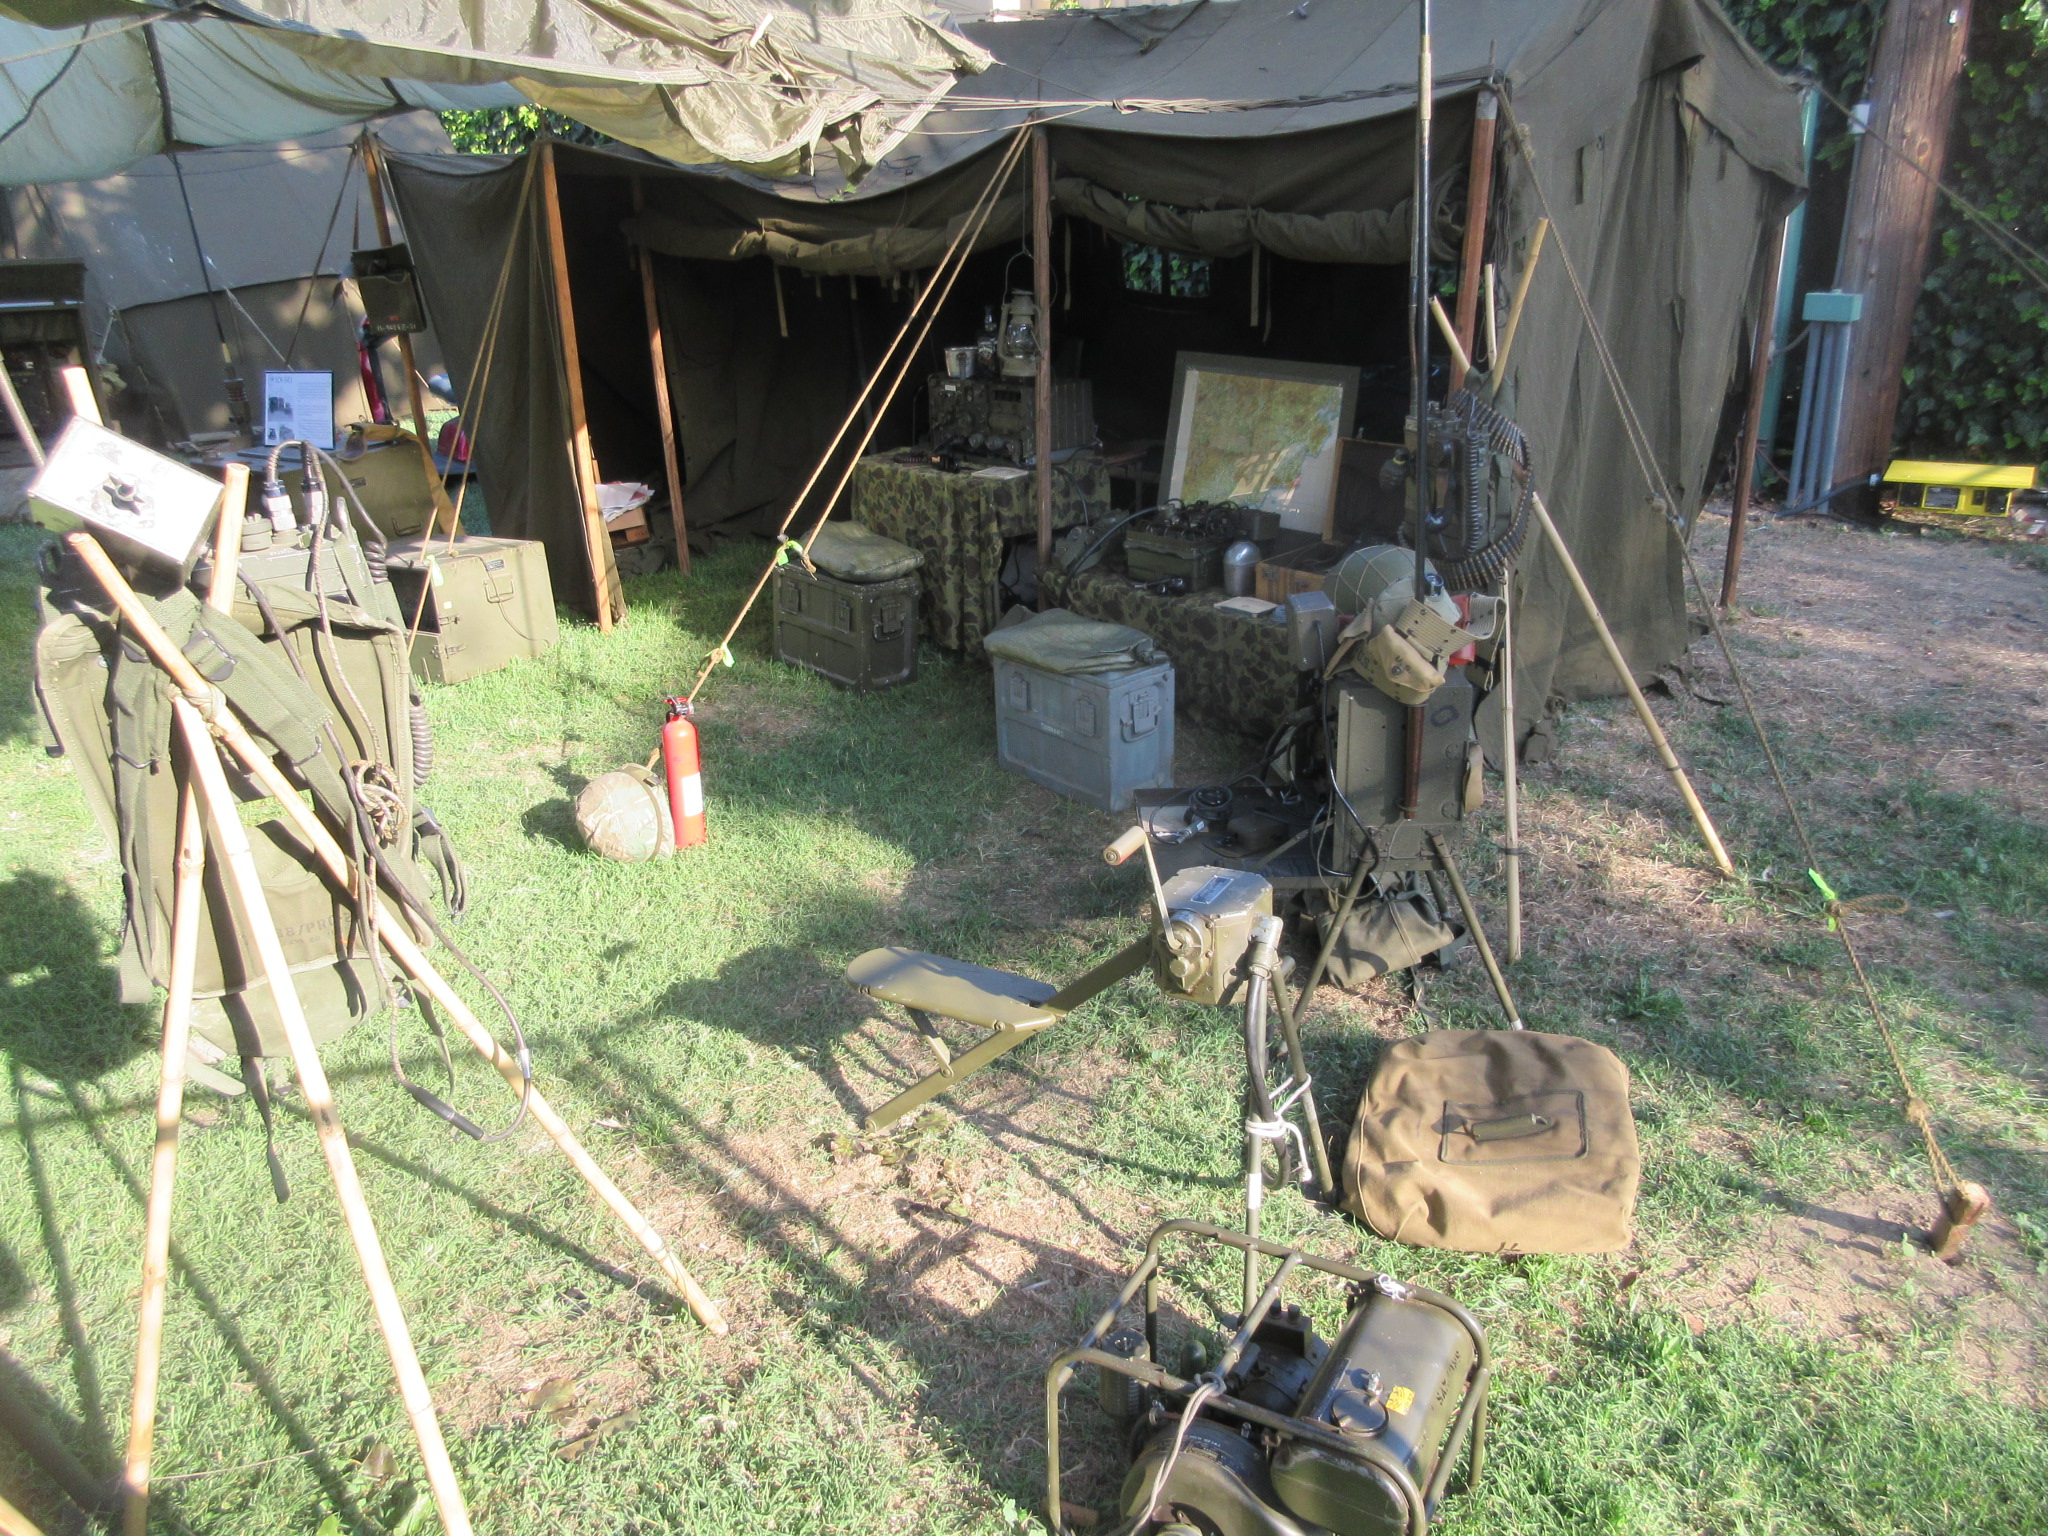 Command Post Tent and gear & Military Vehicles and Radios MVCC/MRCG | N6CC